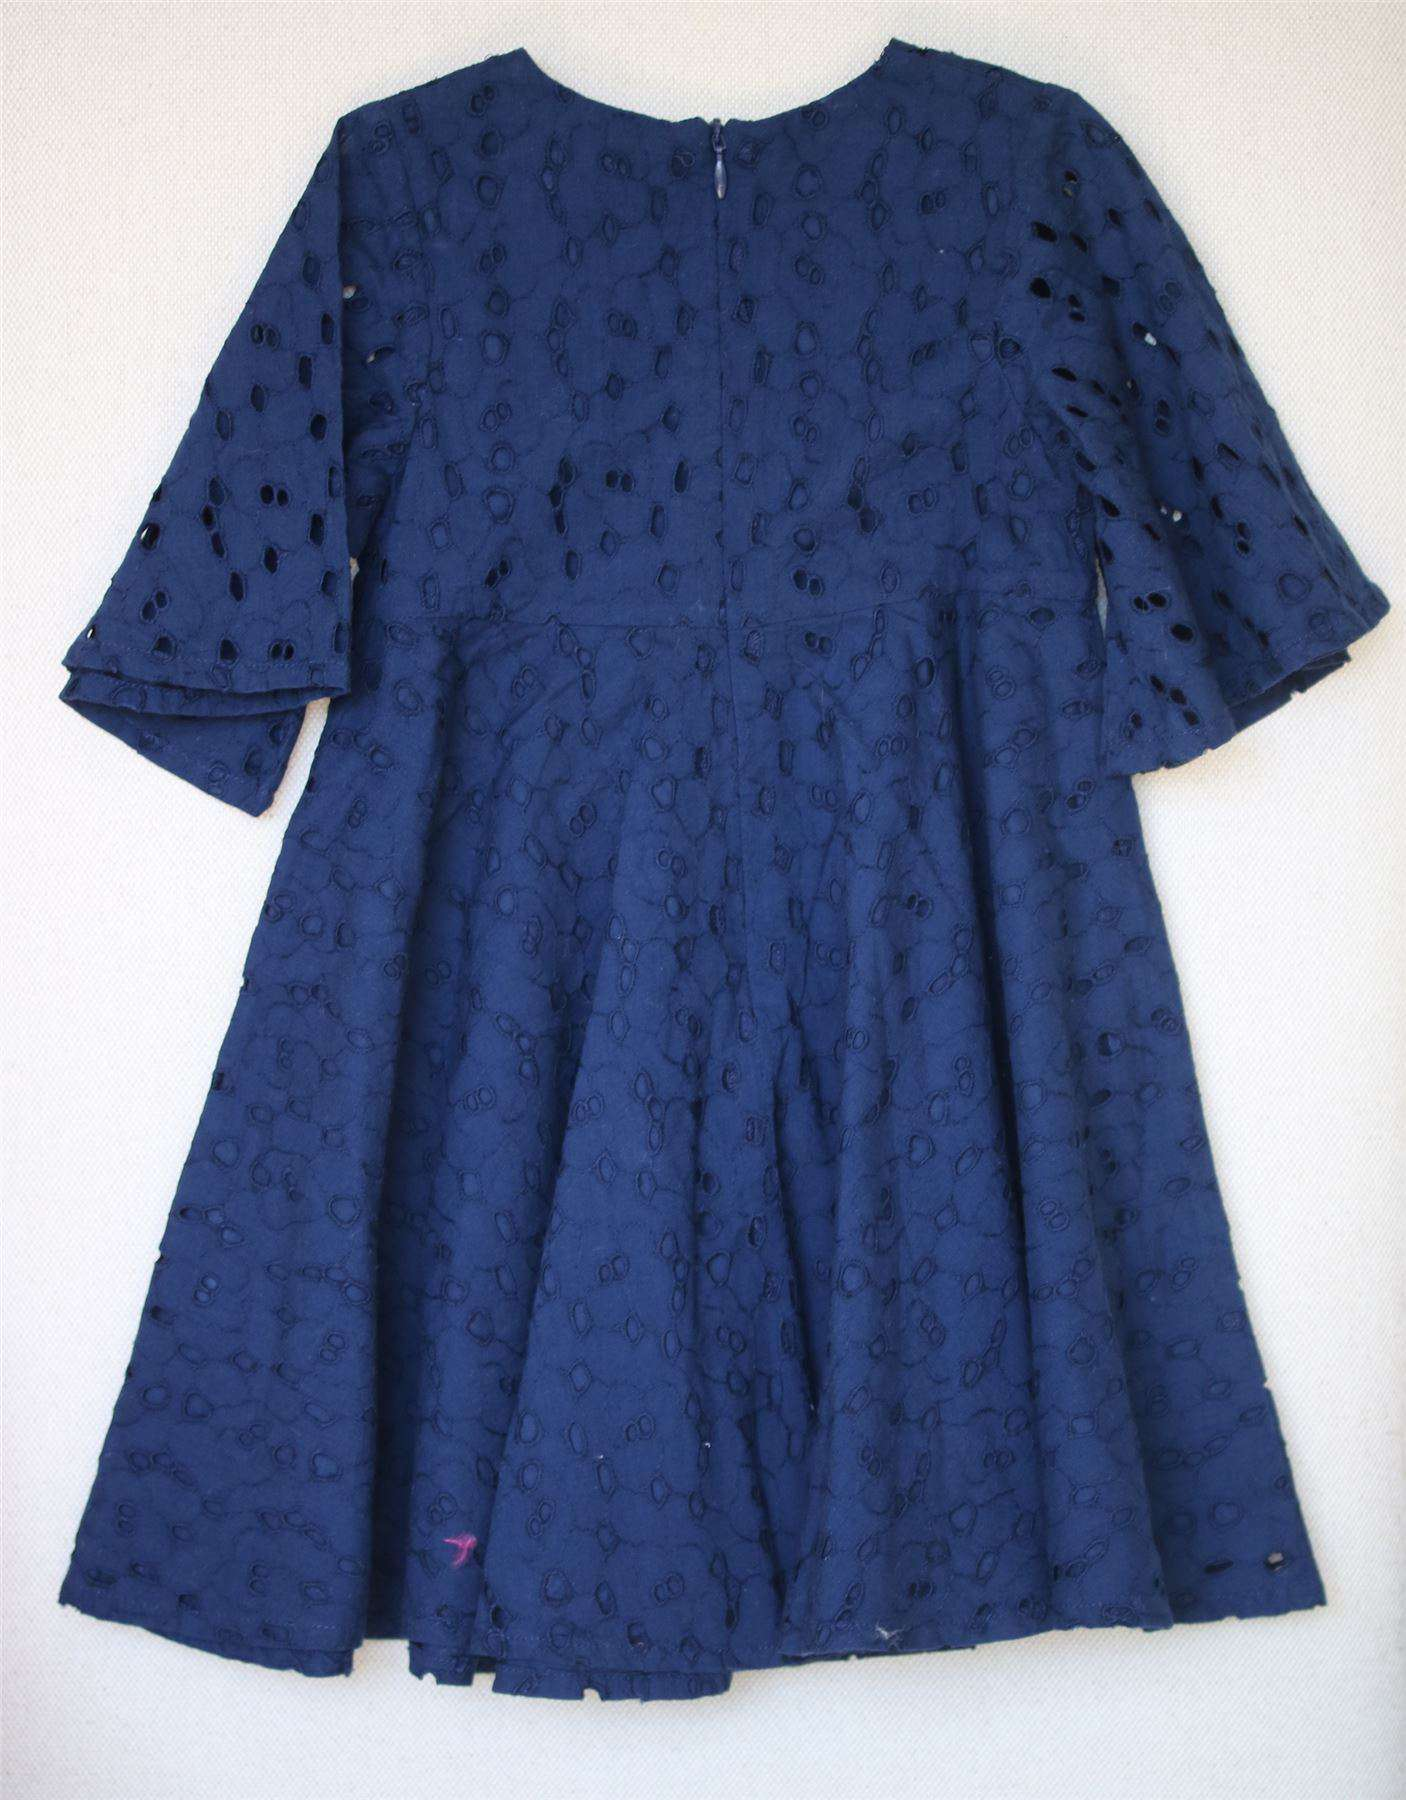 TARTINE ET CHOCOLAT GIRLS NAVY BLUE BRODERIE ANGLAISE DRESS 4 YEARS